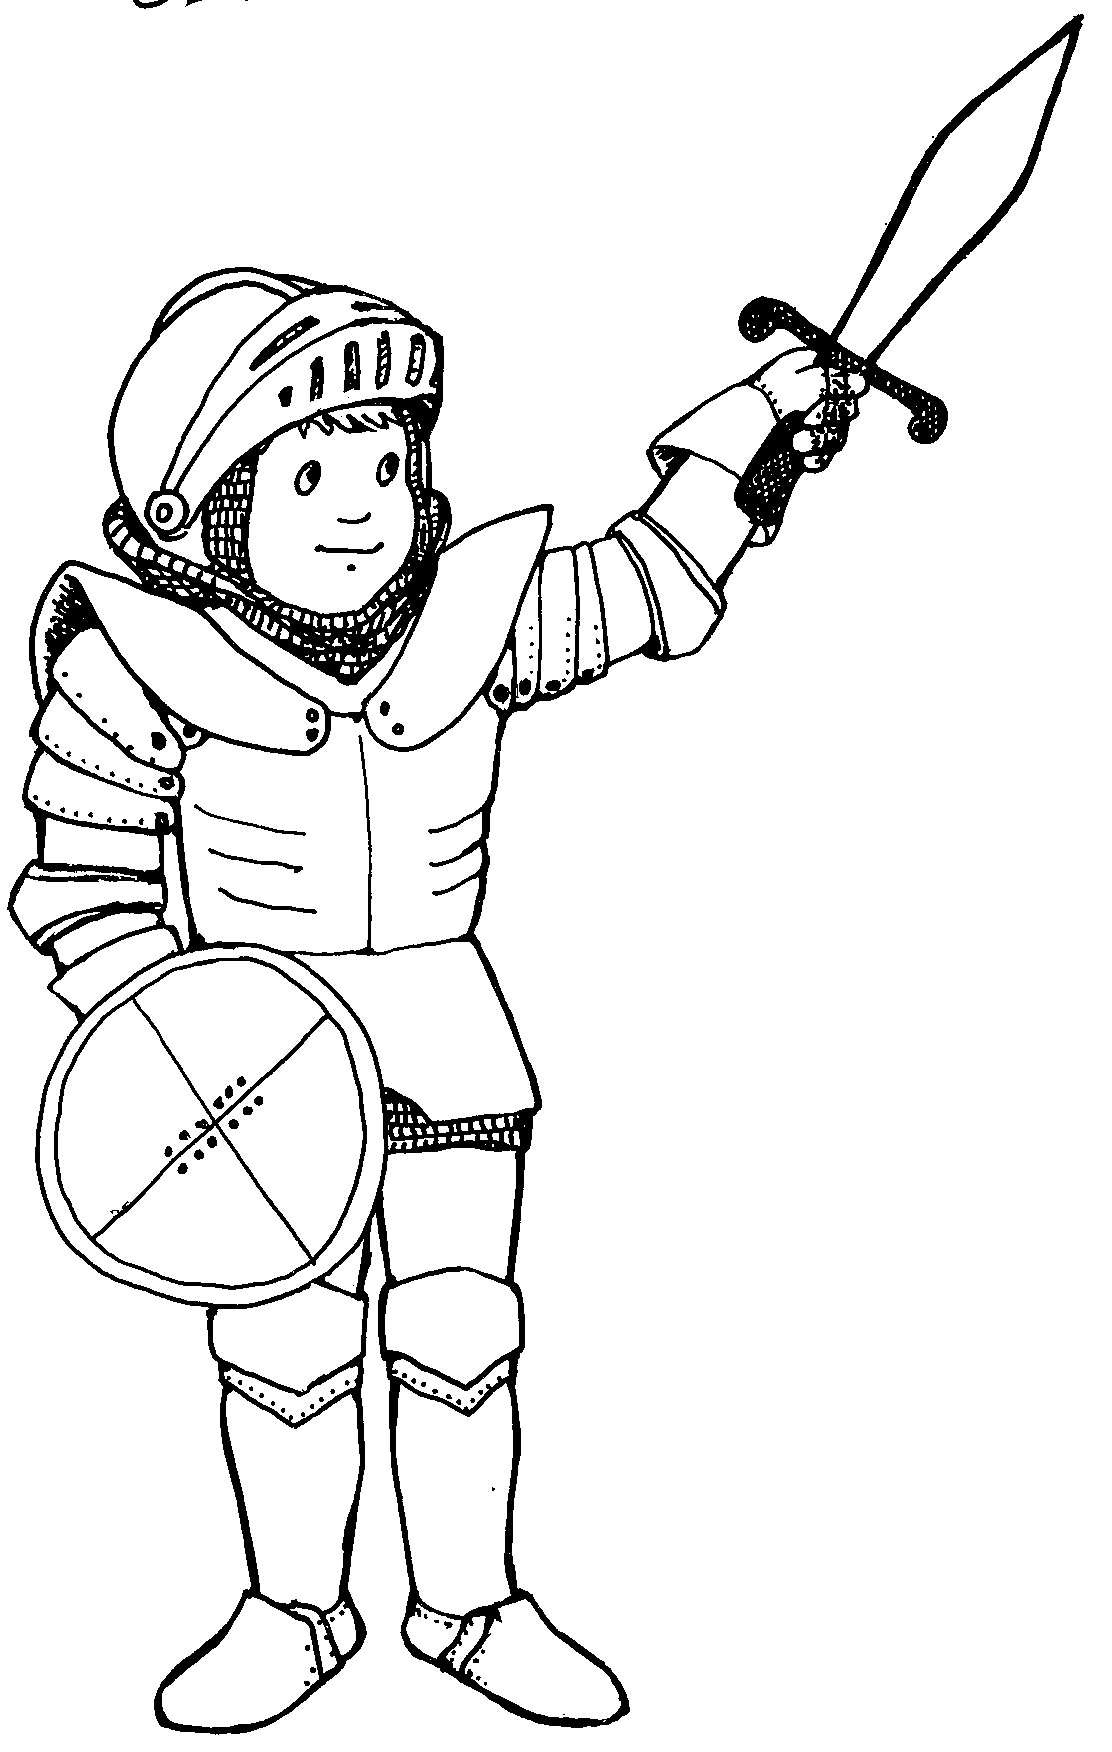 Knight clipart black and white 1 » Clipart Station.